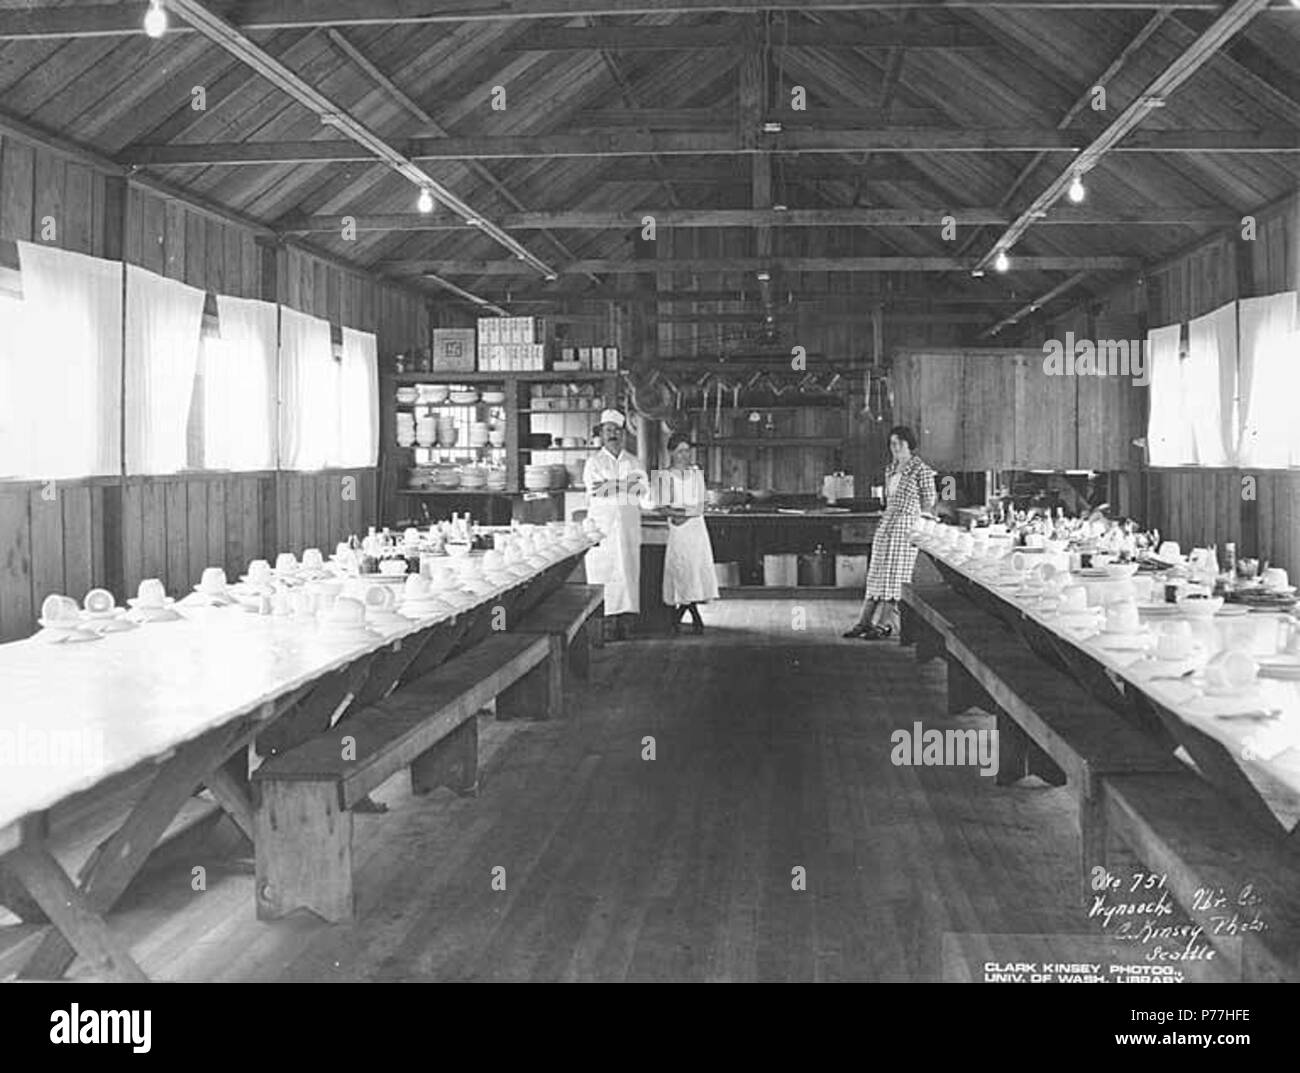 . English: Interior of mess hall with crew, Wynooche Timber Company, Montesano, ca. 1921 . English: Caption on image: Wynooche Tbr Co. C. Kinsey Photo, Seattle. No. 751 PH Coll 516.5232 The Wynooche Timber Company began operations ca. 1913 with headquarters in Hoquiam and logging operations in Montesano. It was named for Wynooche Valley in northeast Grays Harbor County. Wynooche Timber Company was bought out by Schafer Brothers Logging Company ca. 1927. Subjects (LCTGM): Mess halls--Washington (State); Interiors--Washington (State); Table settings & decorations; Cooks; Waitresses--Washington ( - Stock Image